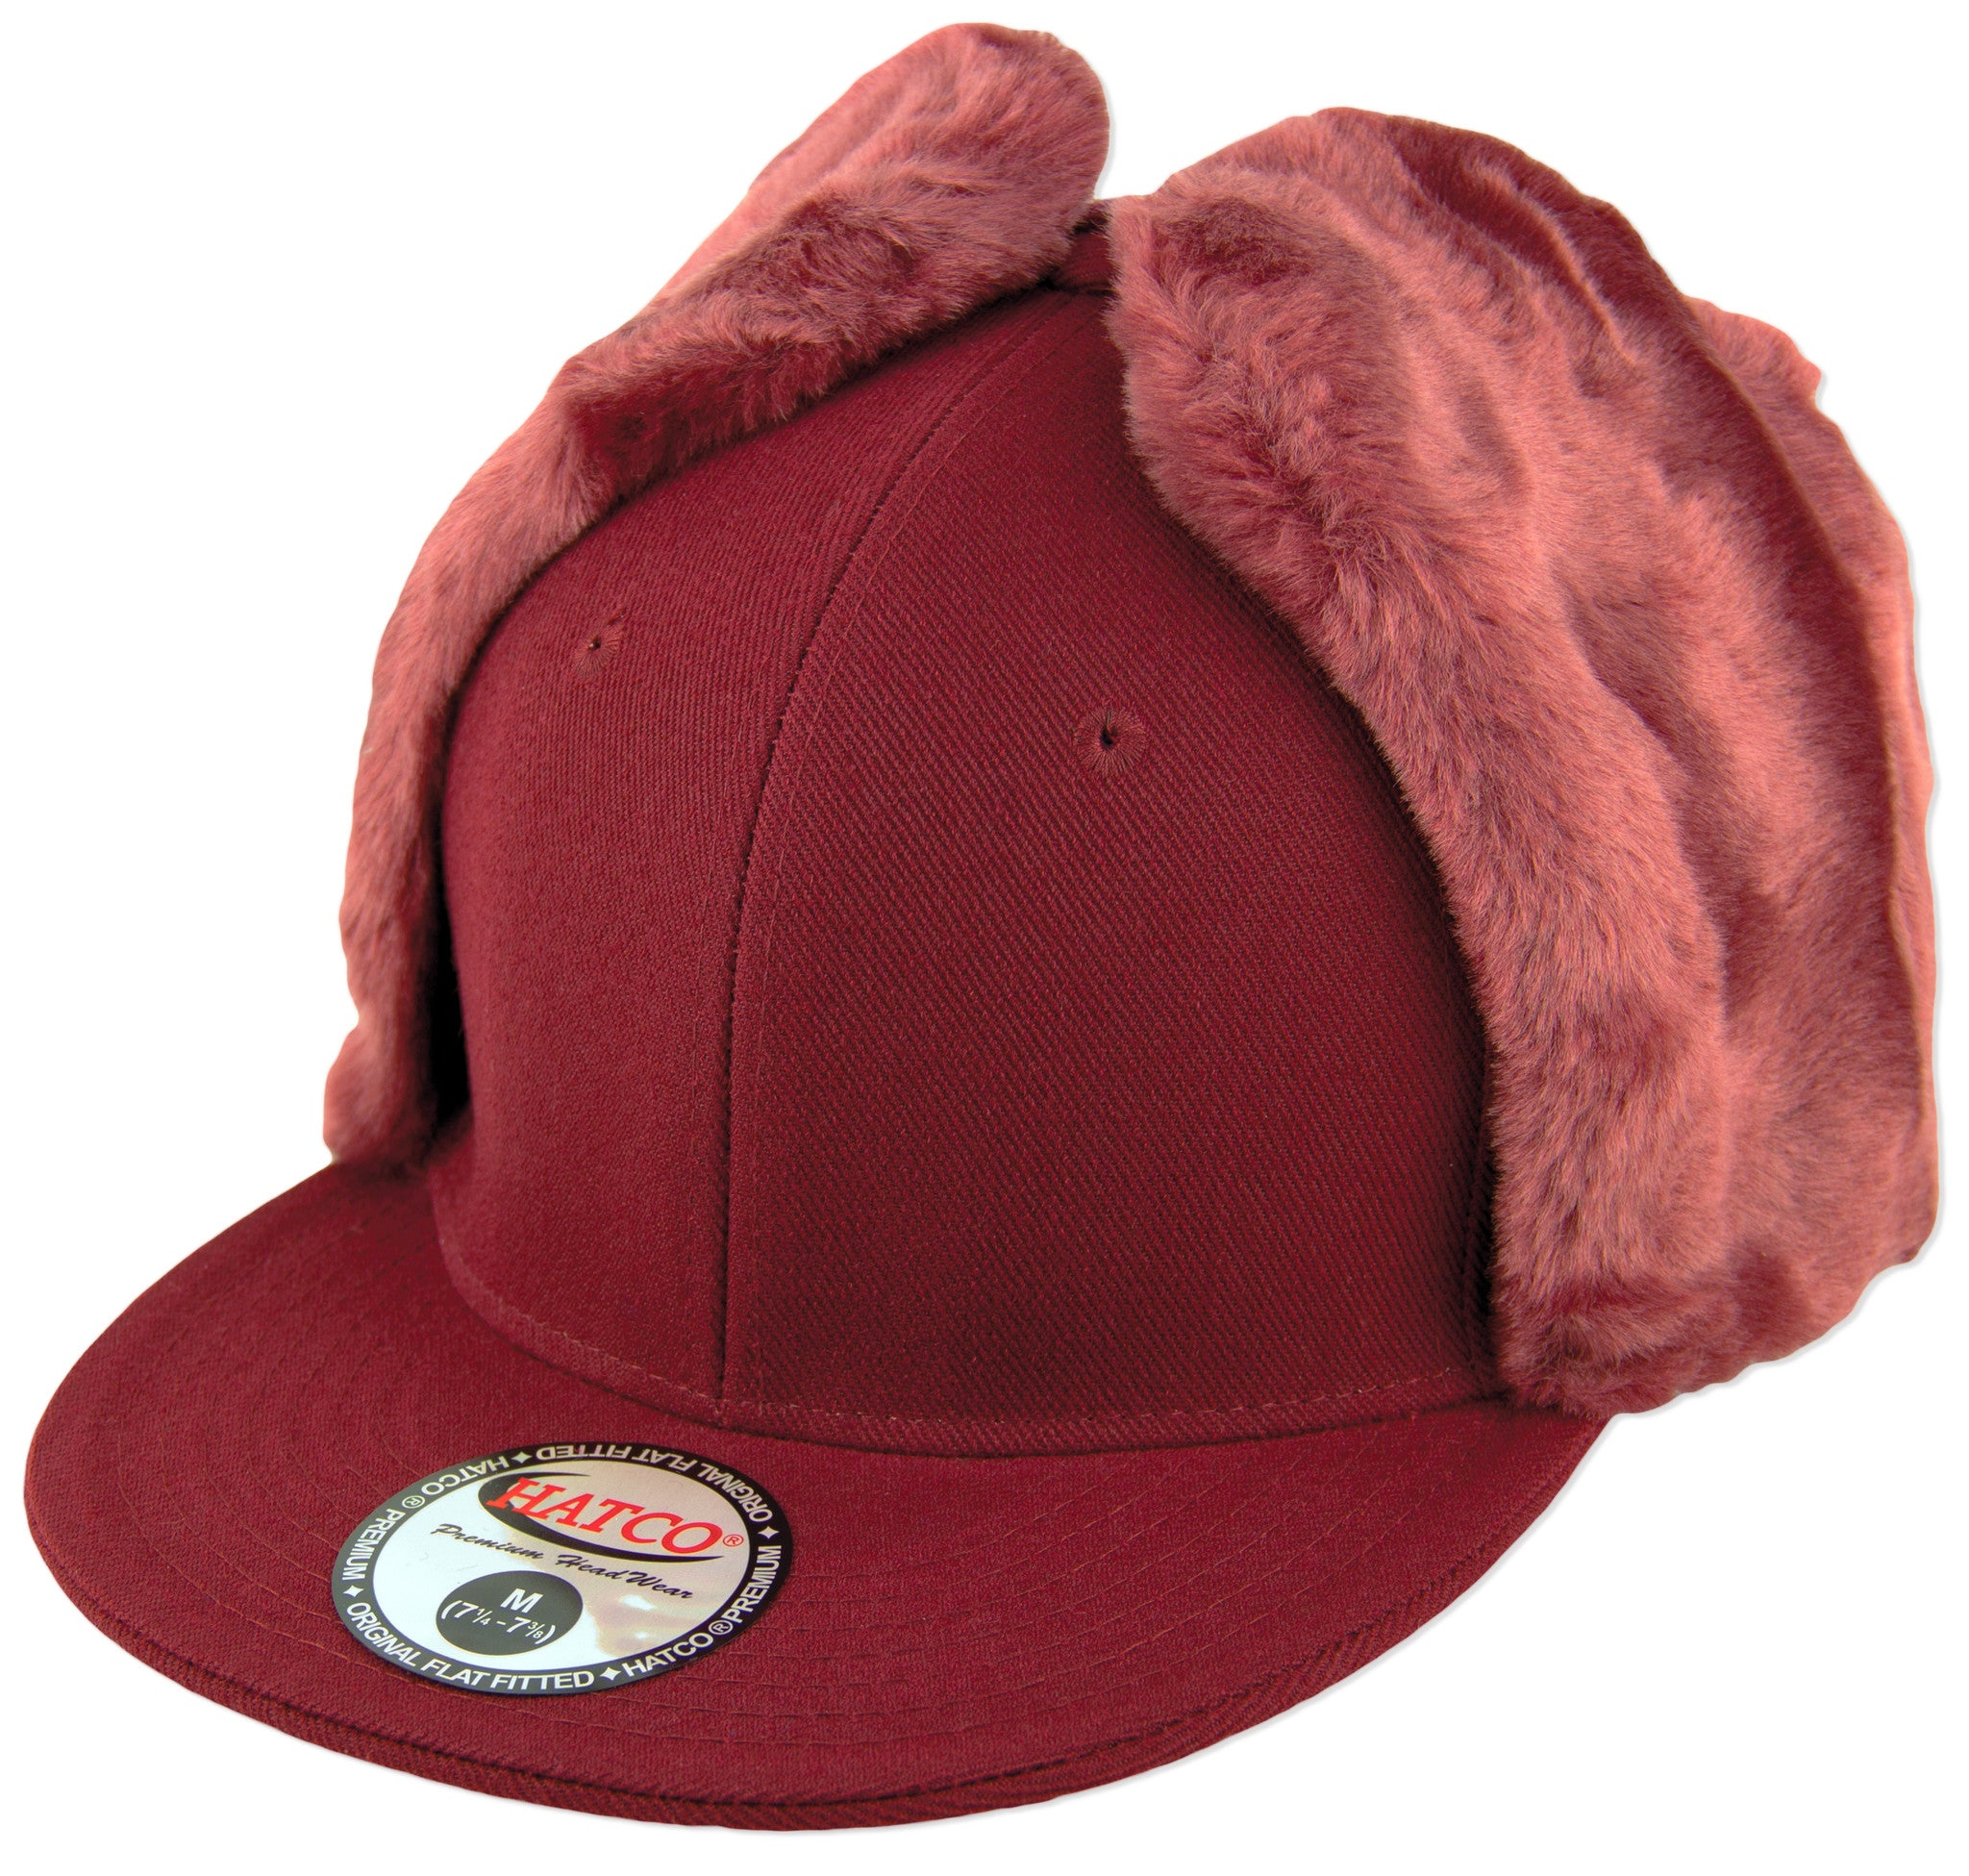 e7a68e080cd3b ... Blank Faux-Fur Dog Ear Fitted Caps - HATCOcaps.com - ...